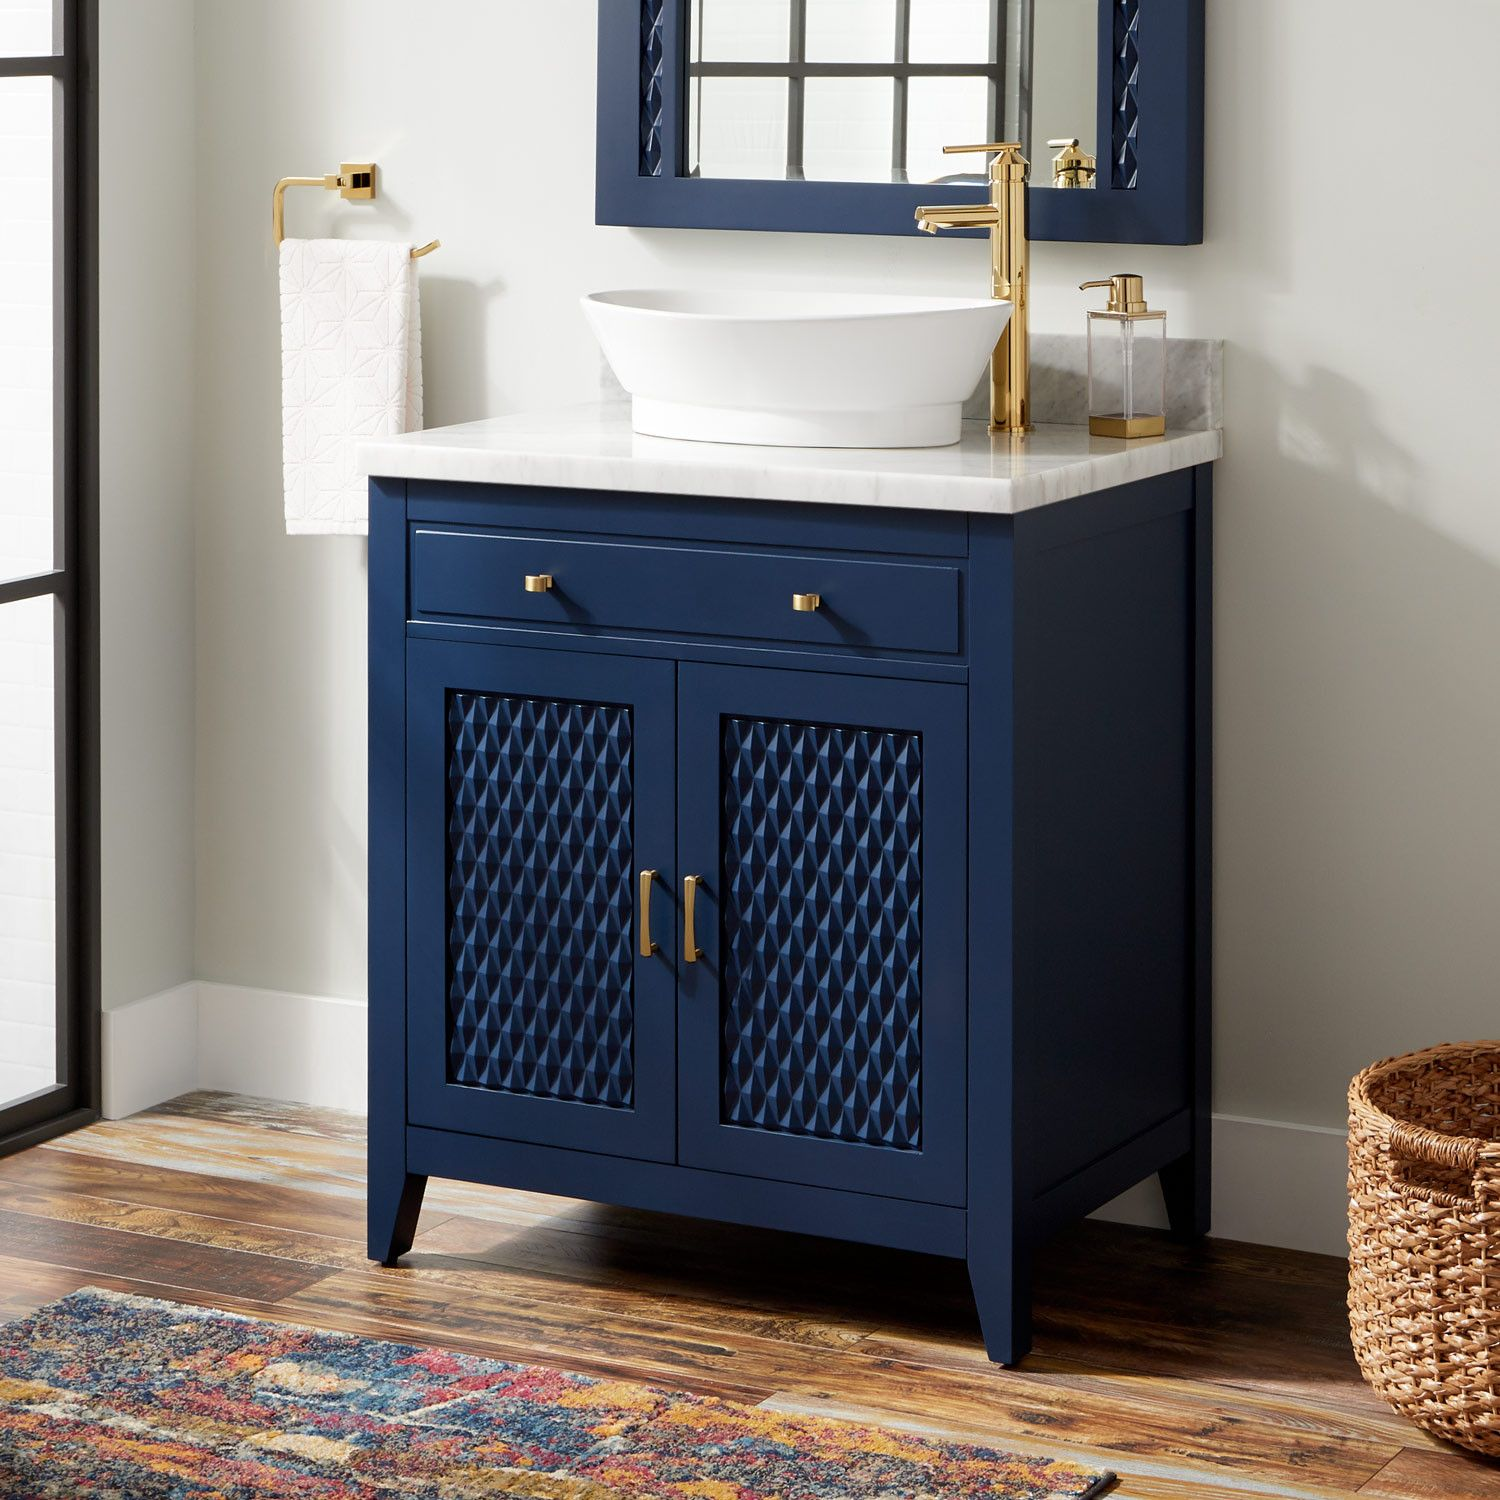 30 Thorton Mahogany Vessel Sink Vanity Bright Navy Blue